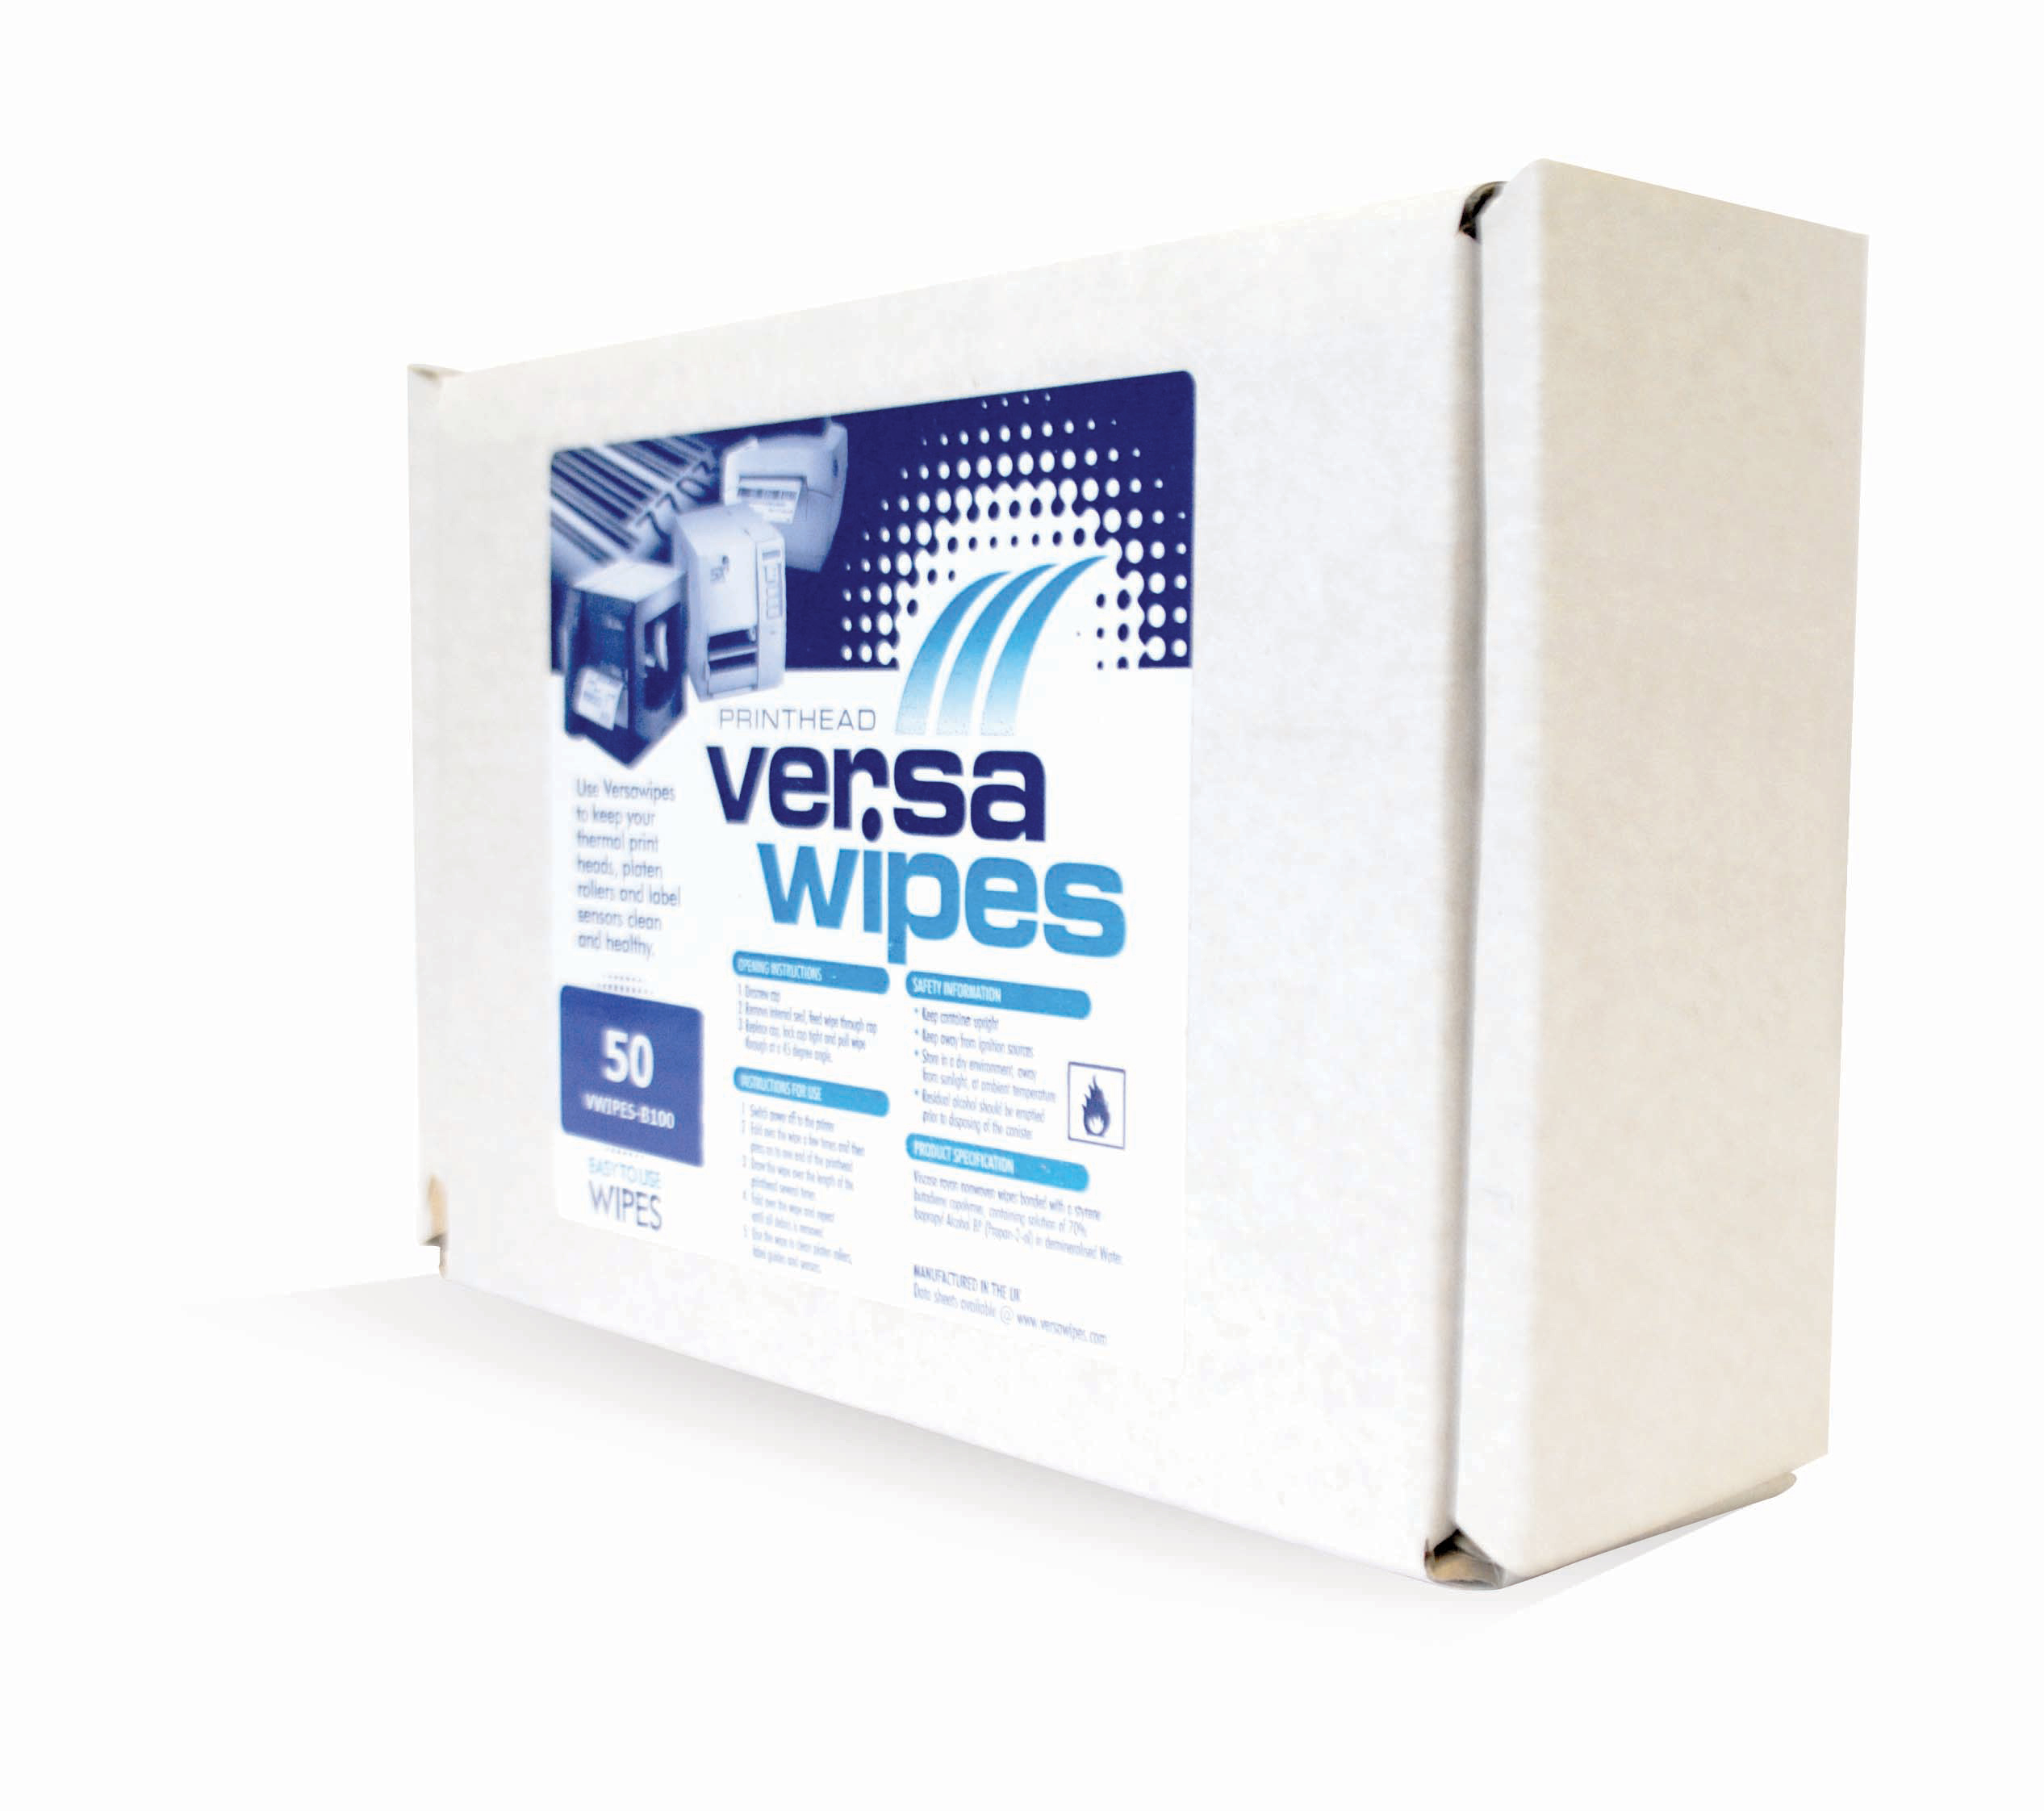 Versawipes in sachet form